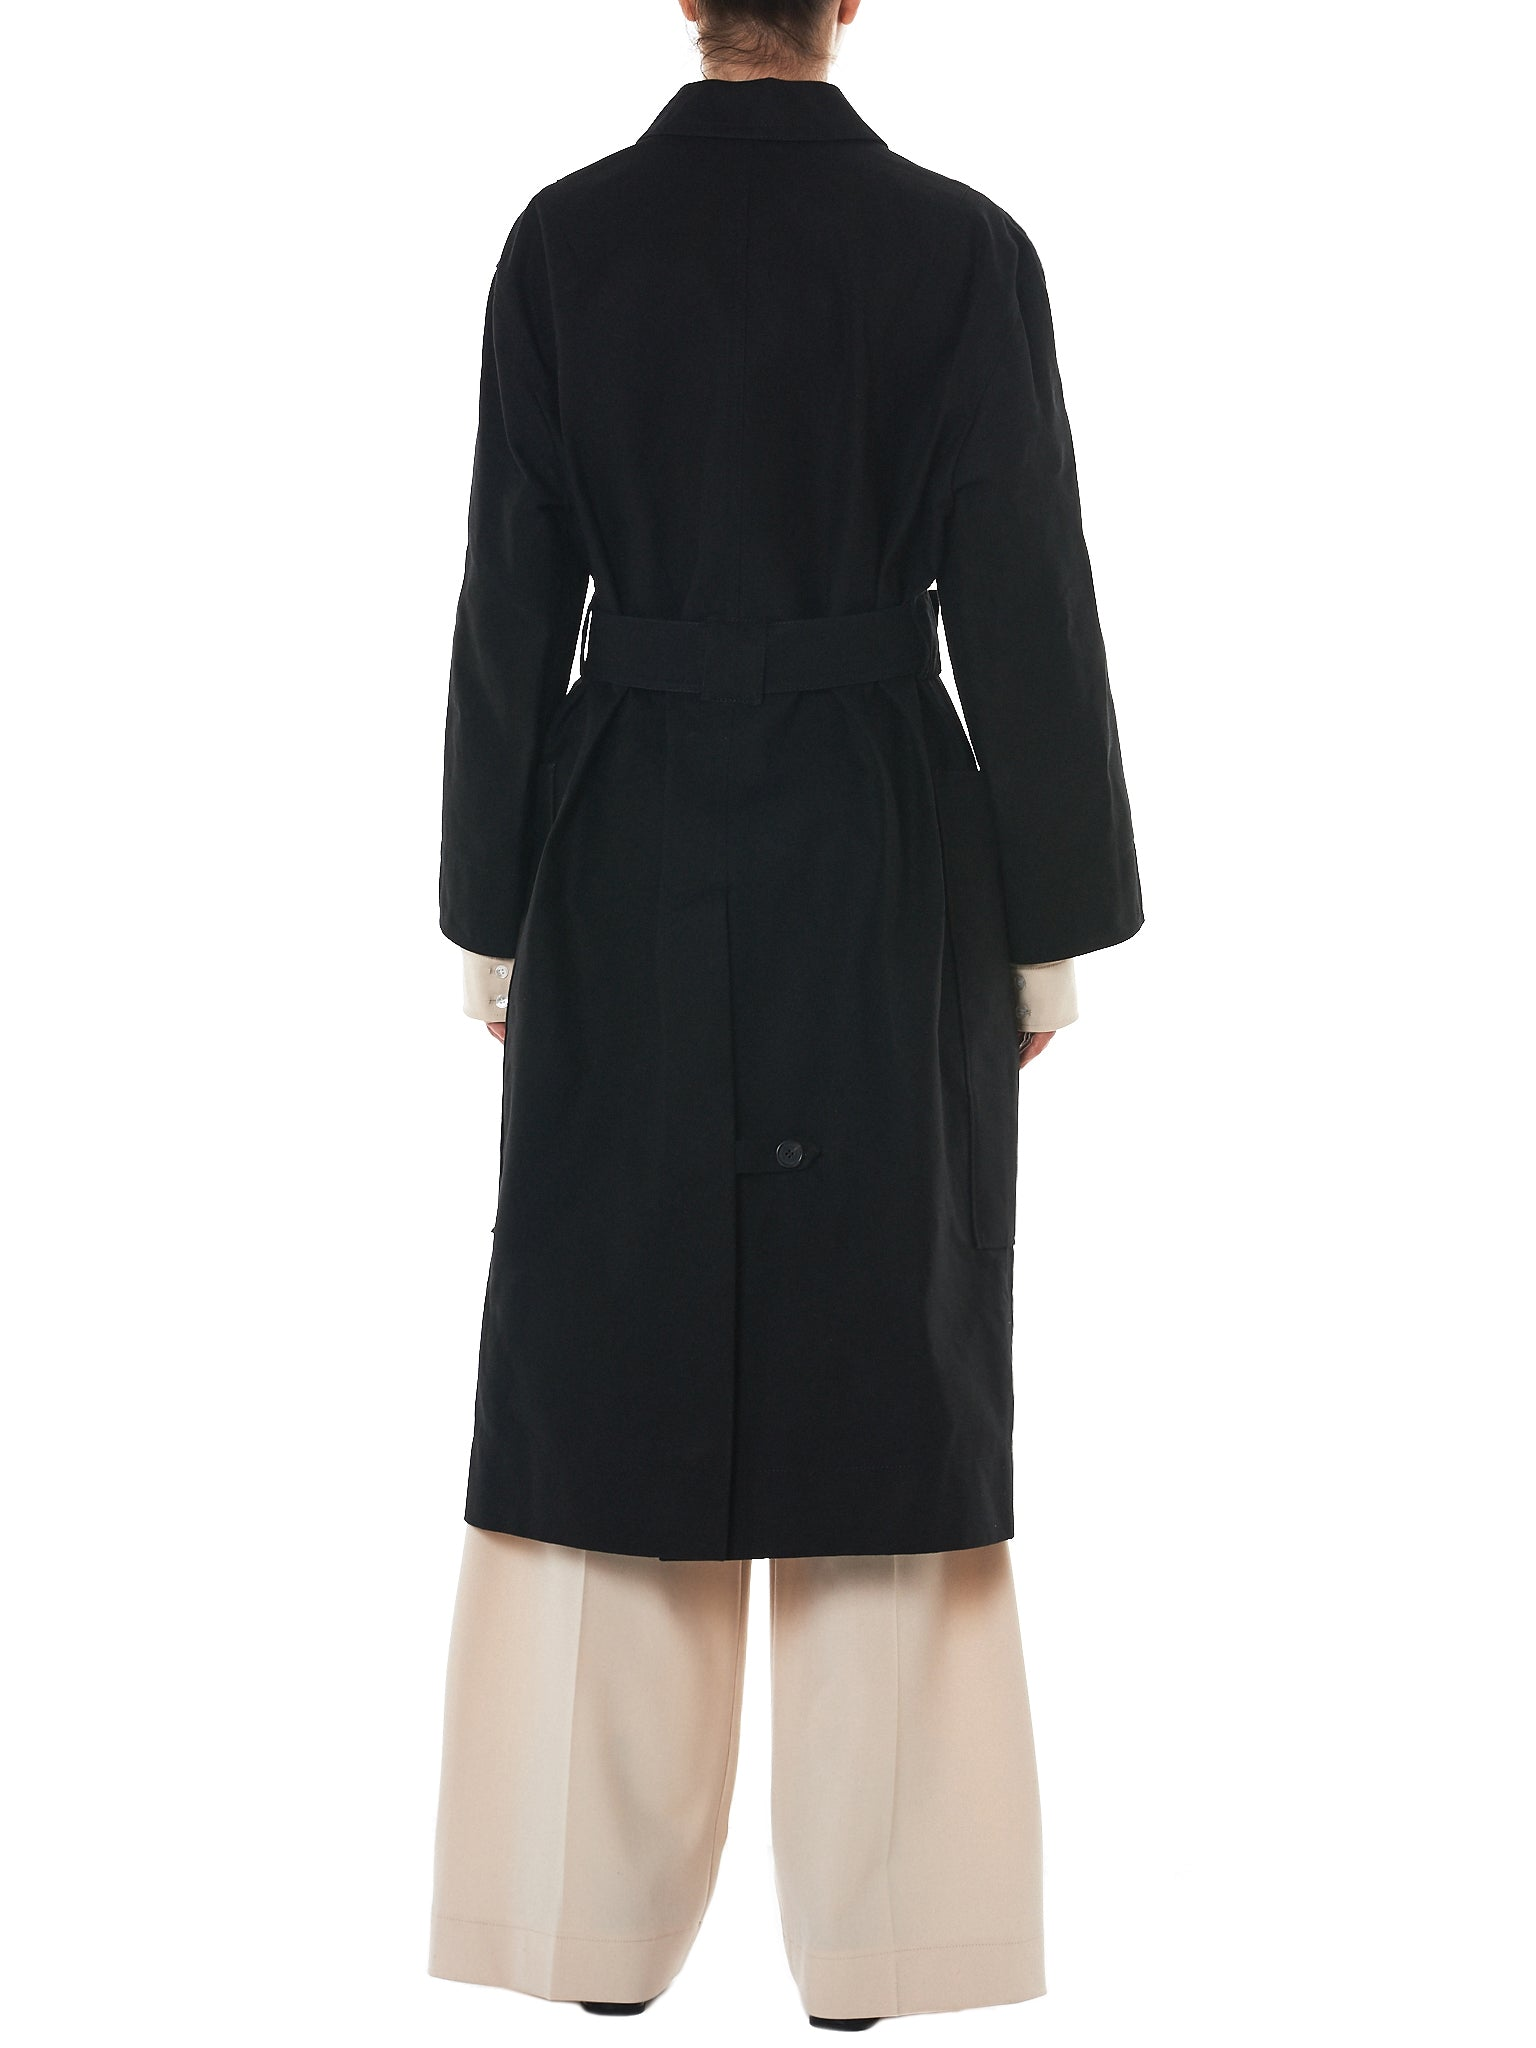 Kwaidan Oversized Coat - Hlorenzo Back